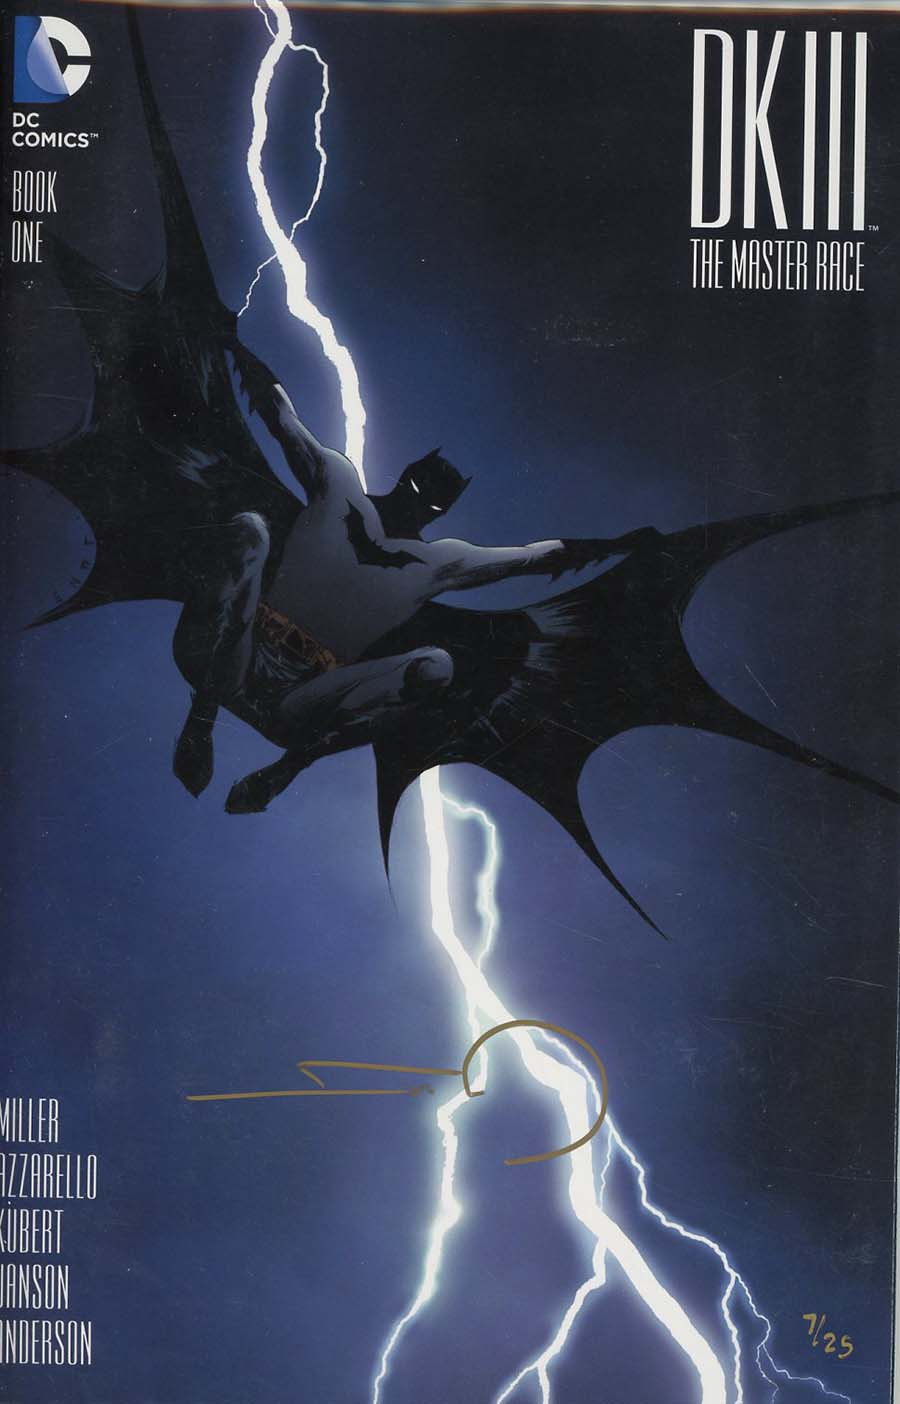 Dark Knight III The Master Race #1 Cover Z-Z-C DF Exclusive Homage Variant Cover Signed By Frank Miller